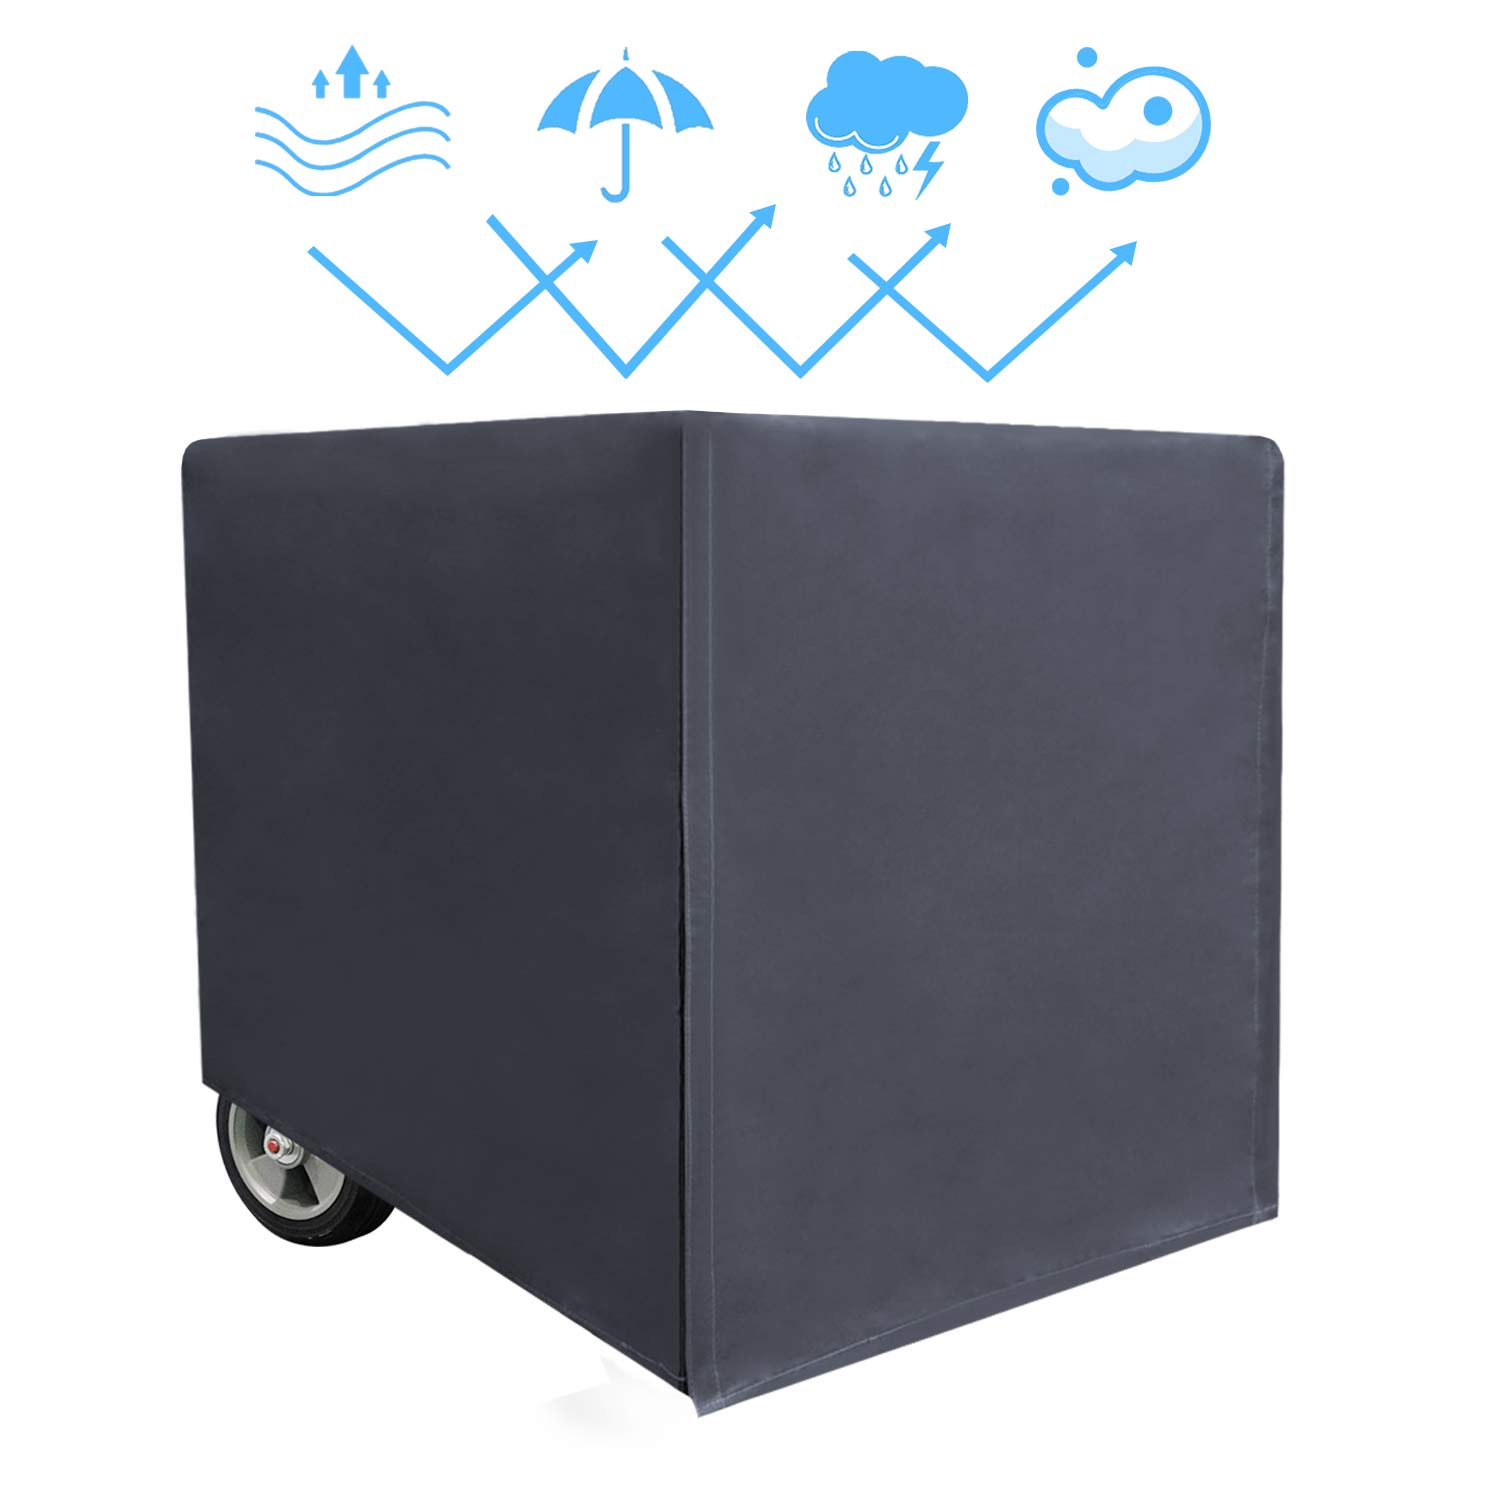 Covolo Generator Cover-100% Waterproof Durable Universal- Heavy Dustproof Storage Cover,Suits Generators up to 28x38x30 inch by Covolo